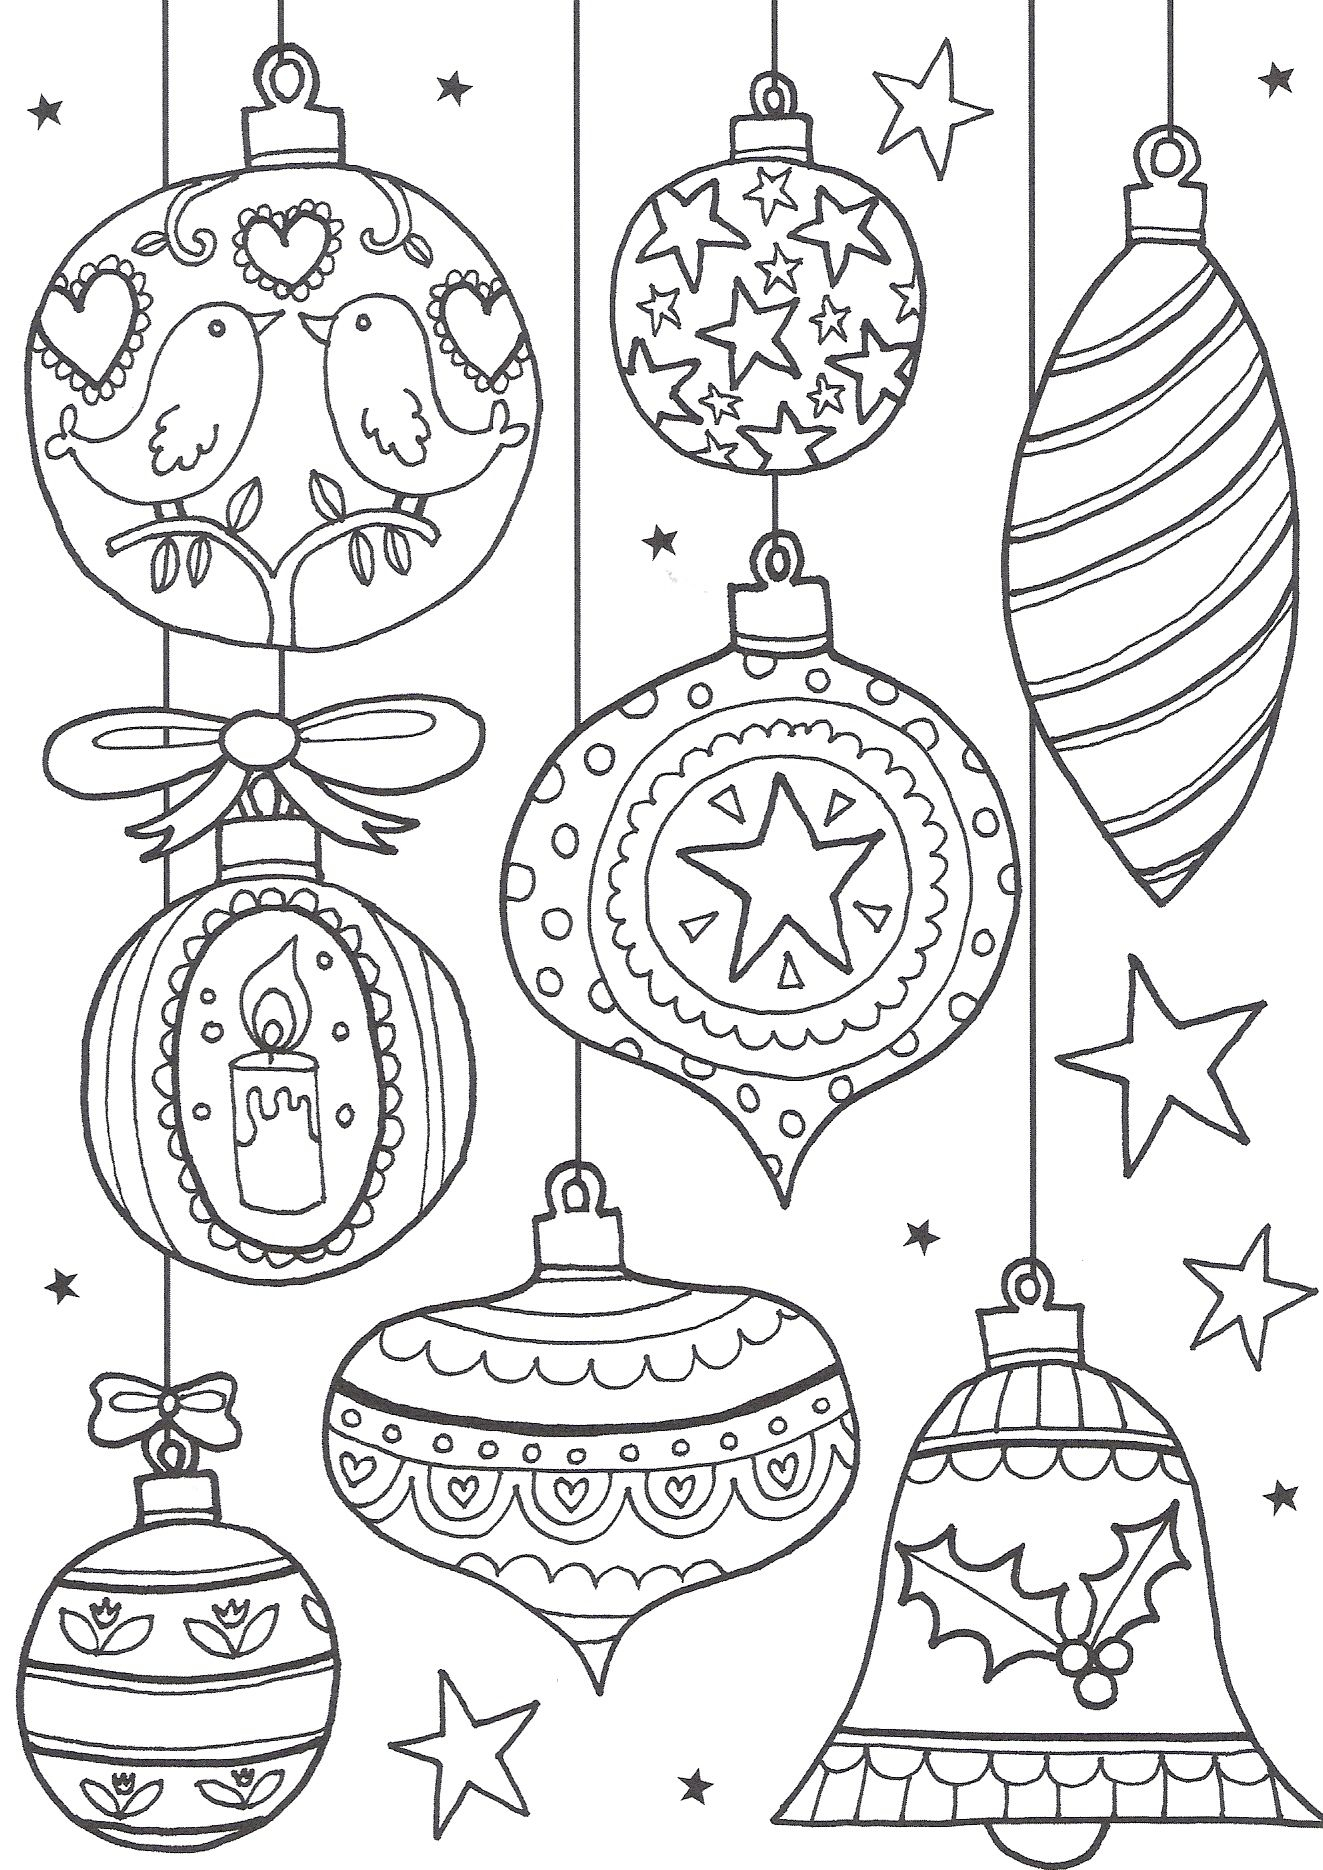 Christmas Color Pages For Kids Coloring Ideas Christmas Coloring For Kids Extraordinary Free